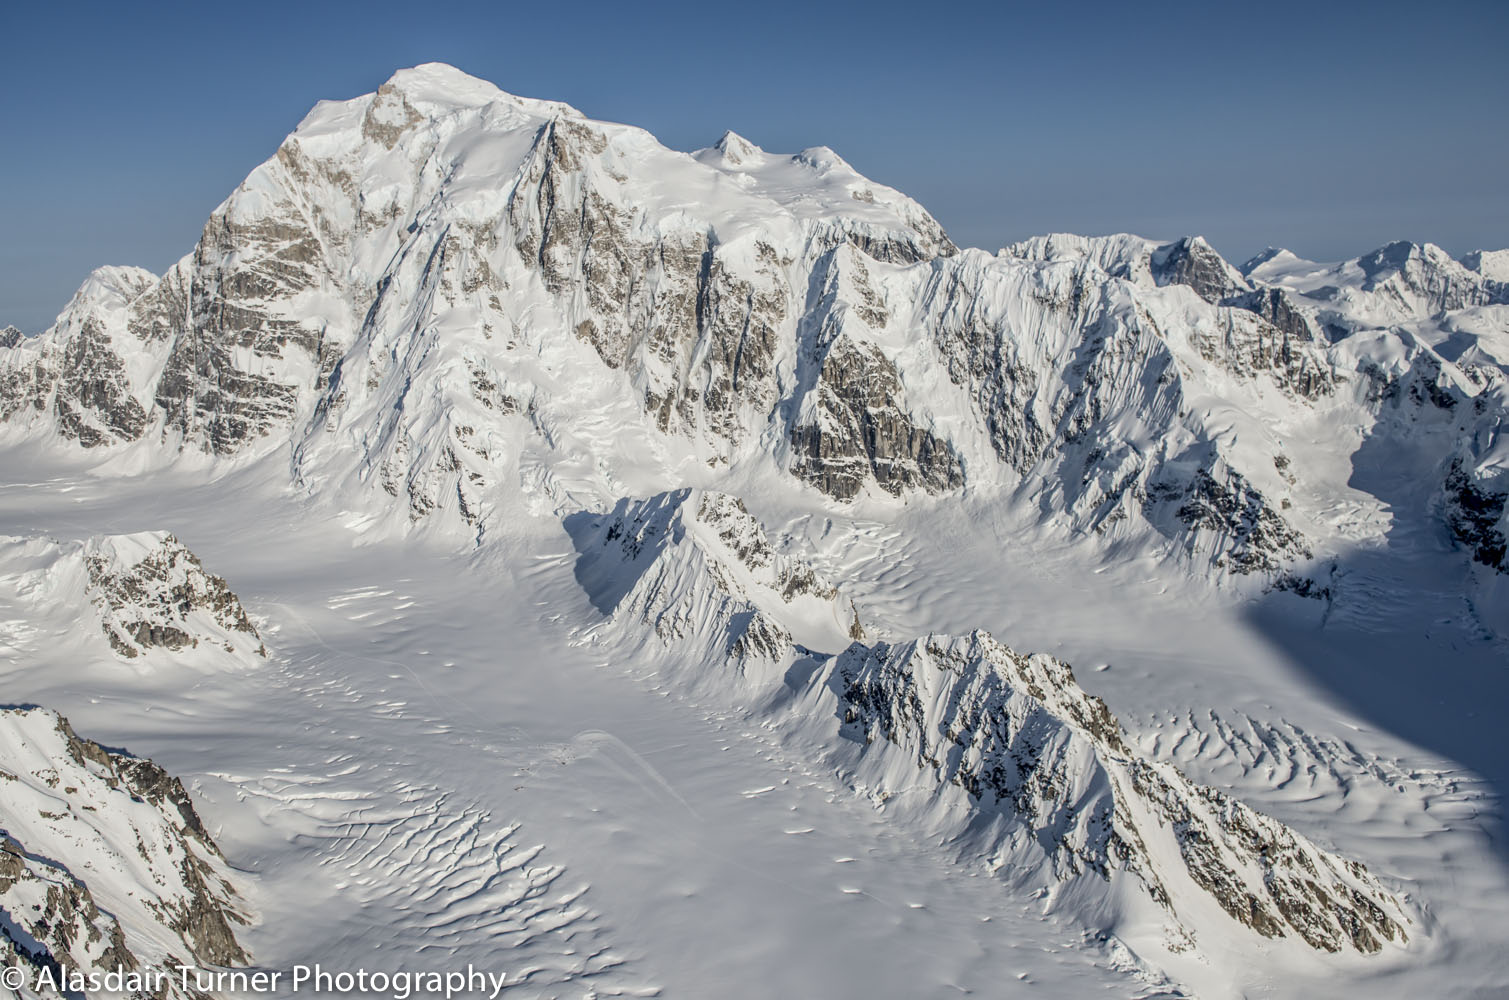 Mount Hunter from the north side. Click on the image to purchase.